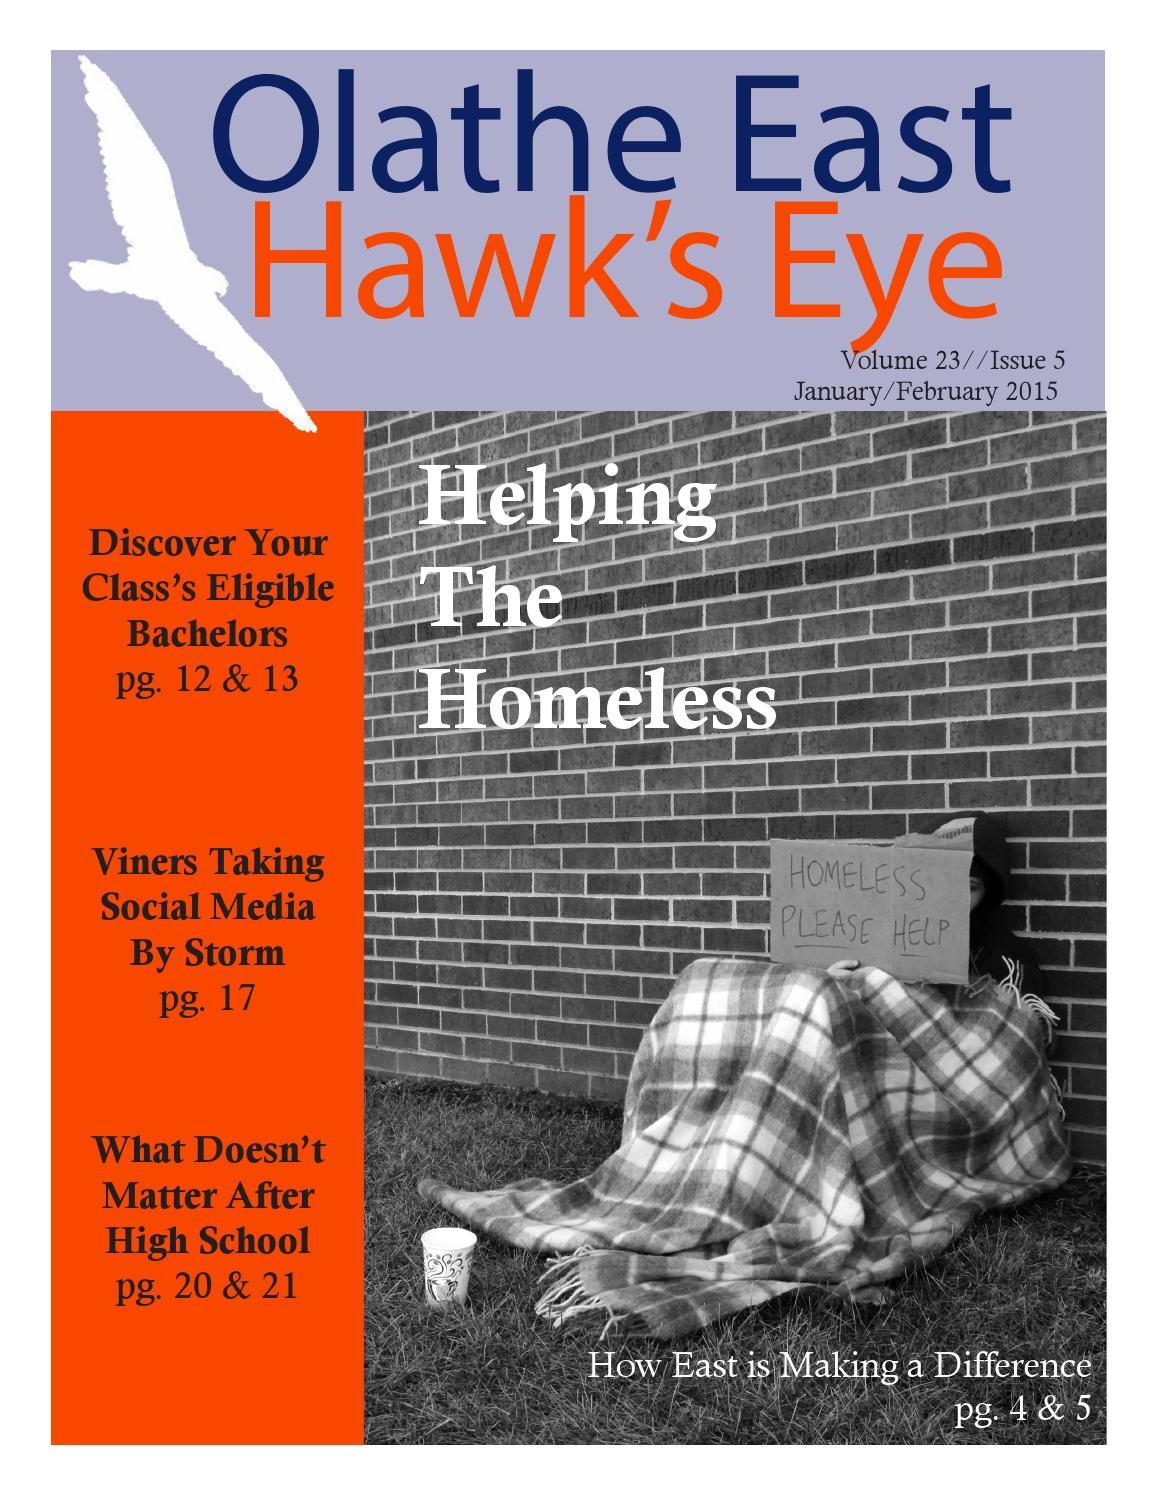 Vol 23 Issue 5 By Oe Hawks Eye Issuu Class Test 4 Integrated Circuits Proprofs Quiz